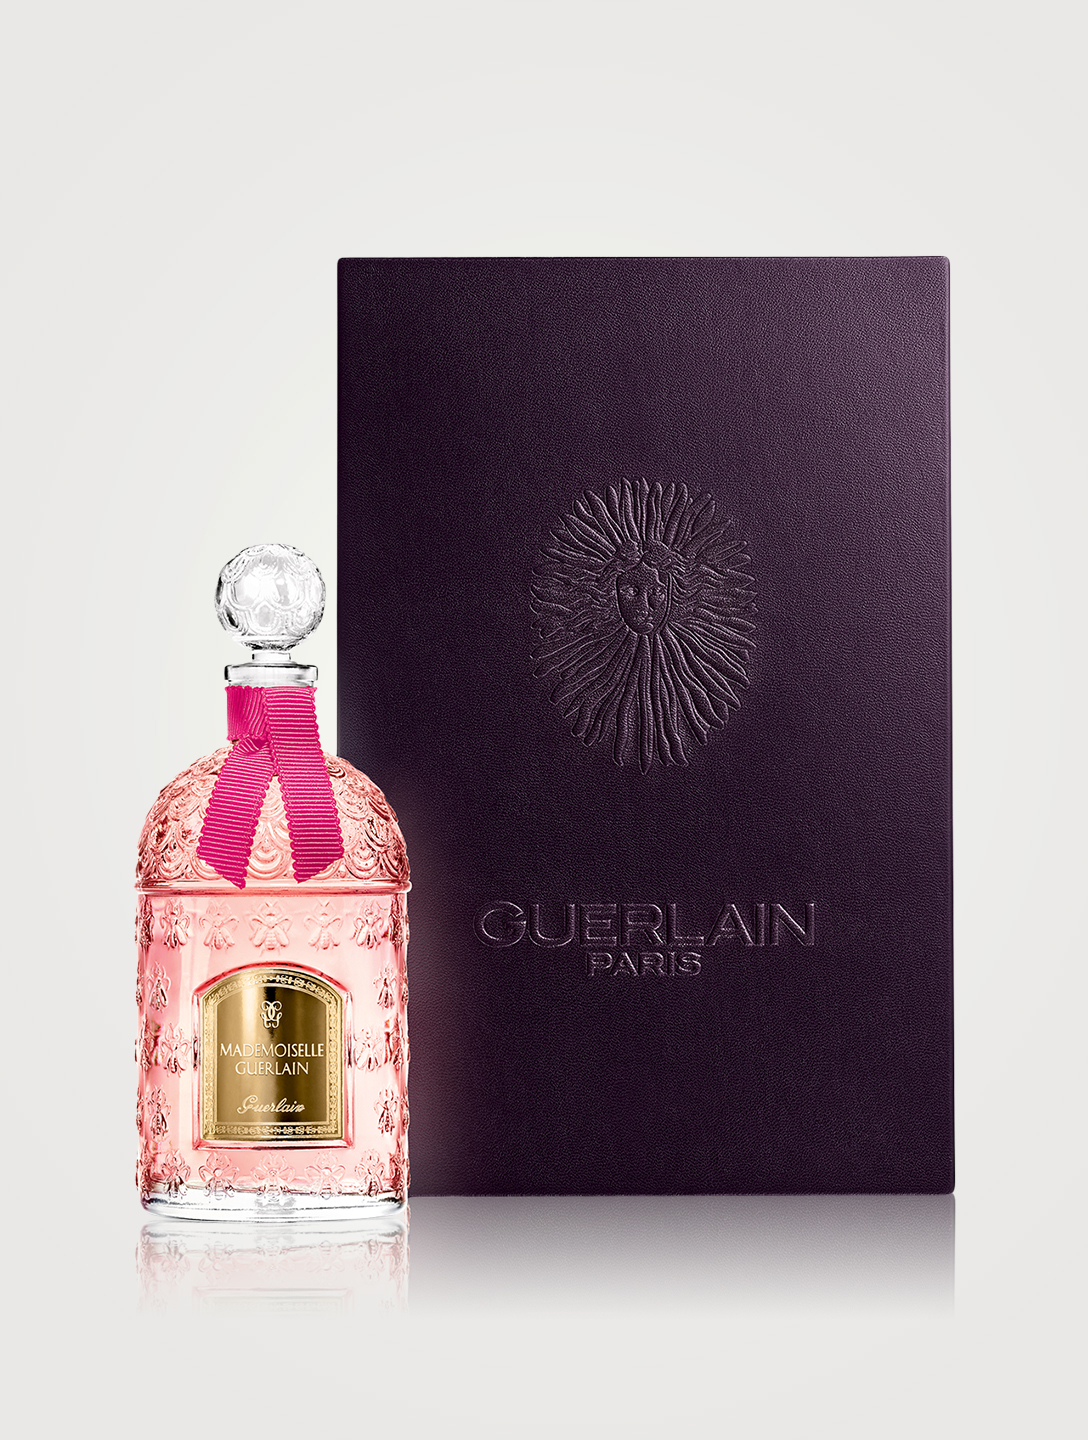 GUERLAIN Mademoiselle Guerlain Eau de Parfum - Exclusive Collection Beauty